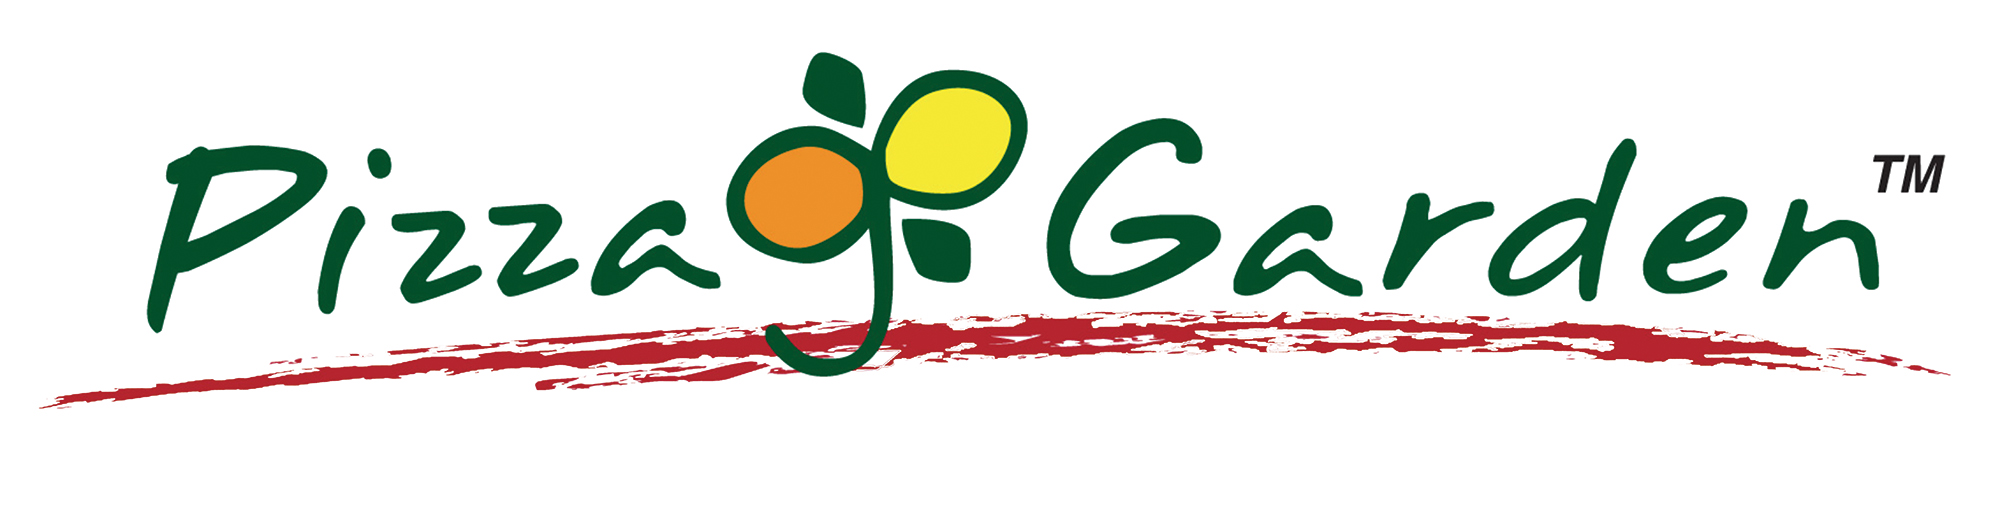 pizza garden logo - Pizza Garden